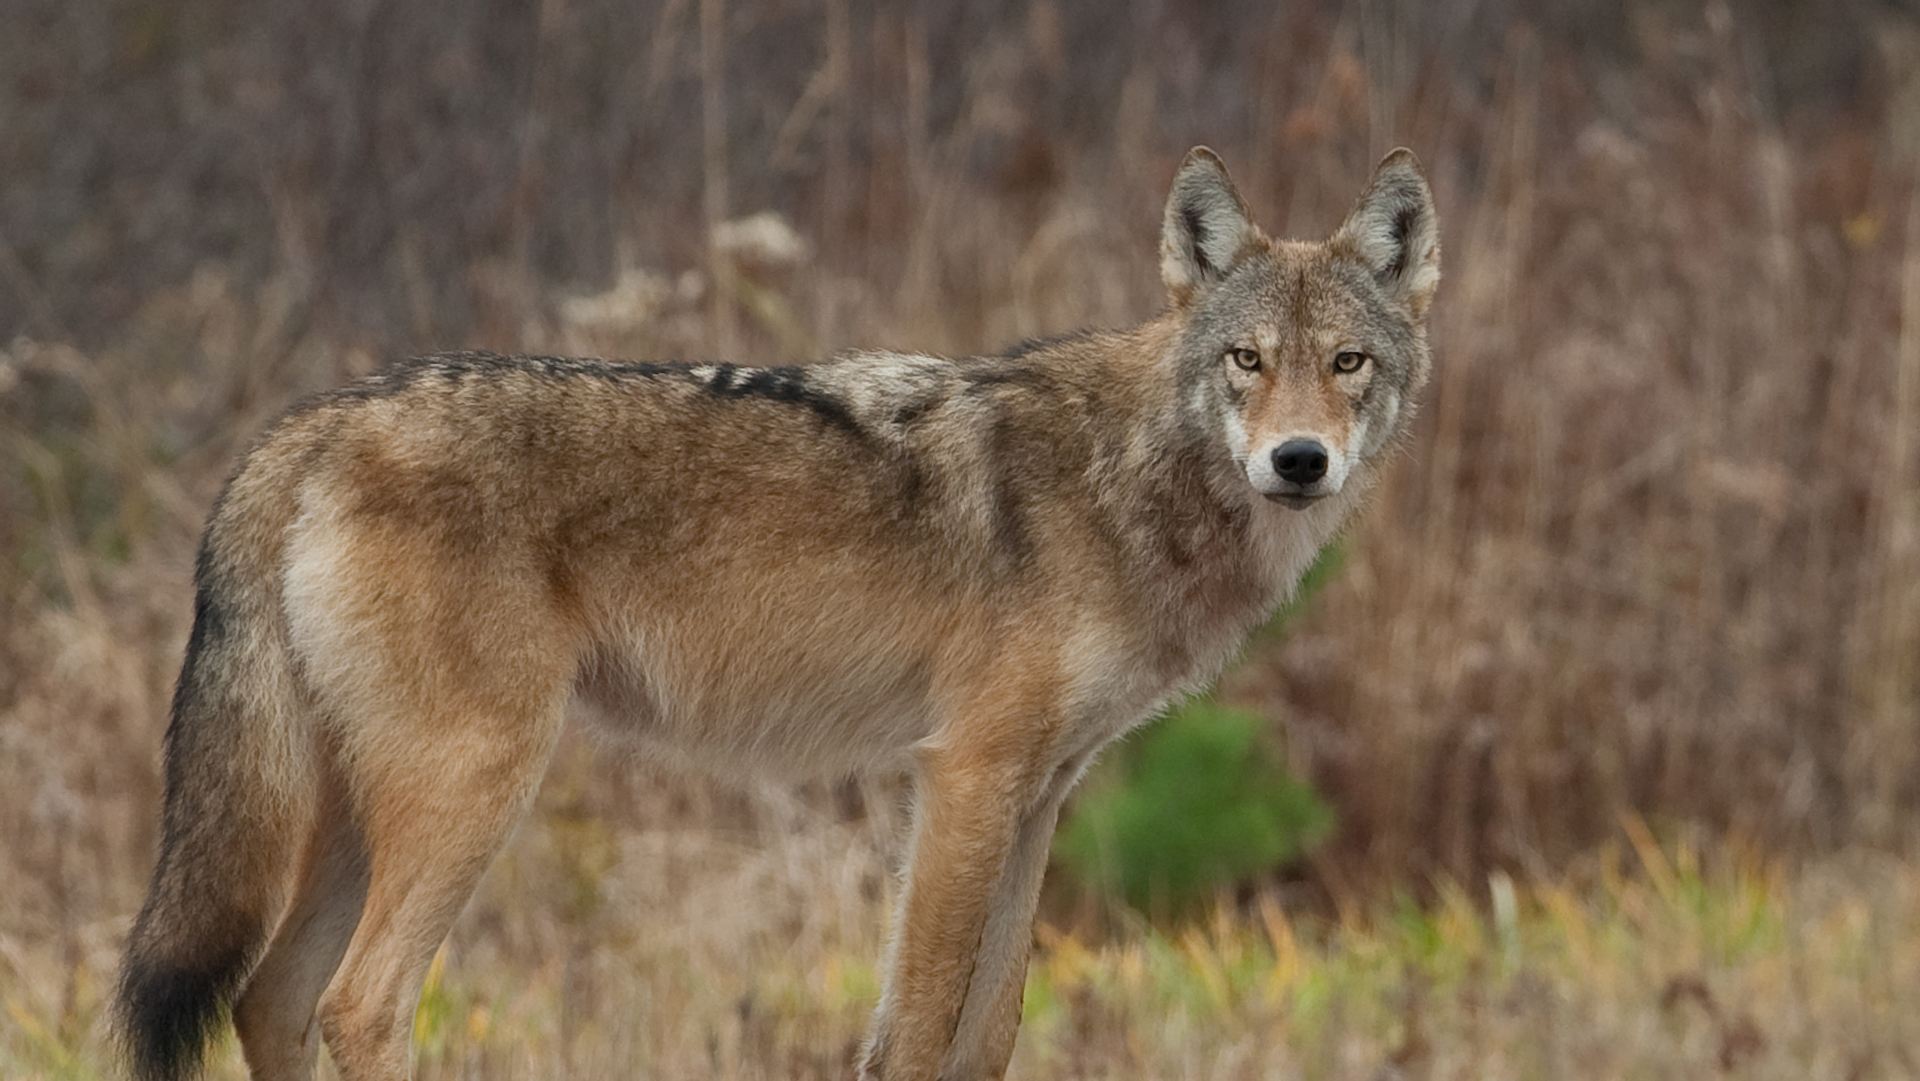 Reputable Understanding Wolf Hybrids Just Got A Bit Easier Green Science Understanding Wolf Hybrids Just Got A Bit Wolf Hybrid Dog Behavior Wolf Hybrid Dogs California bark post Wolf Hybrid Dog